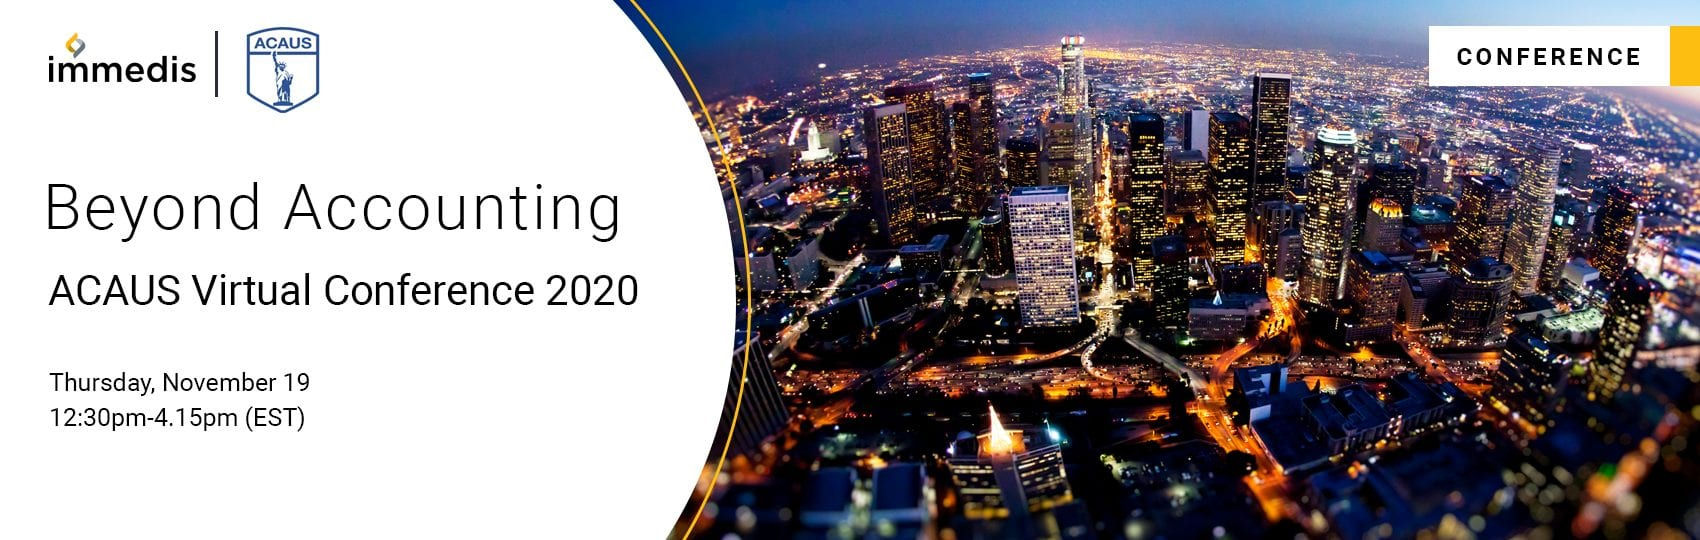 ACAUS-events-beyond-accounting-2020